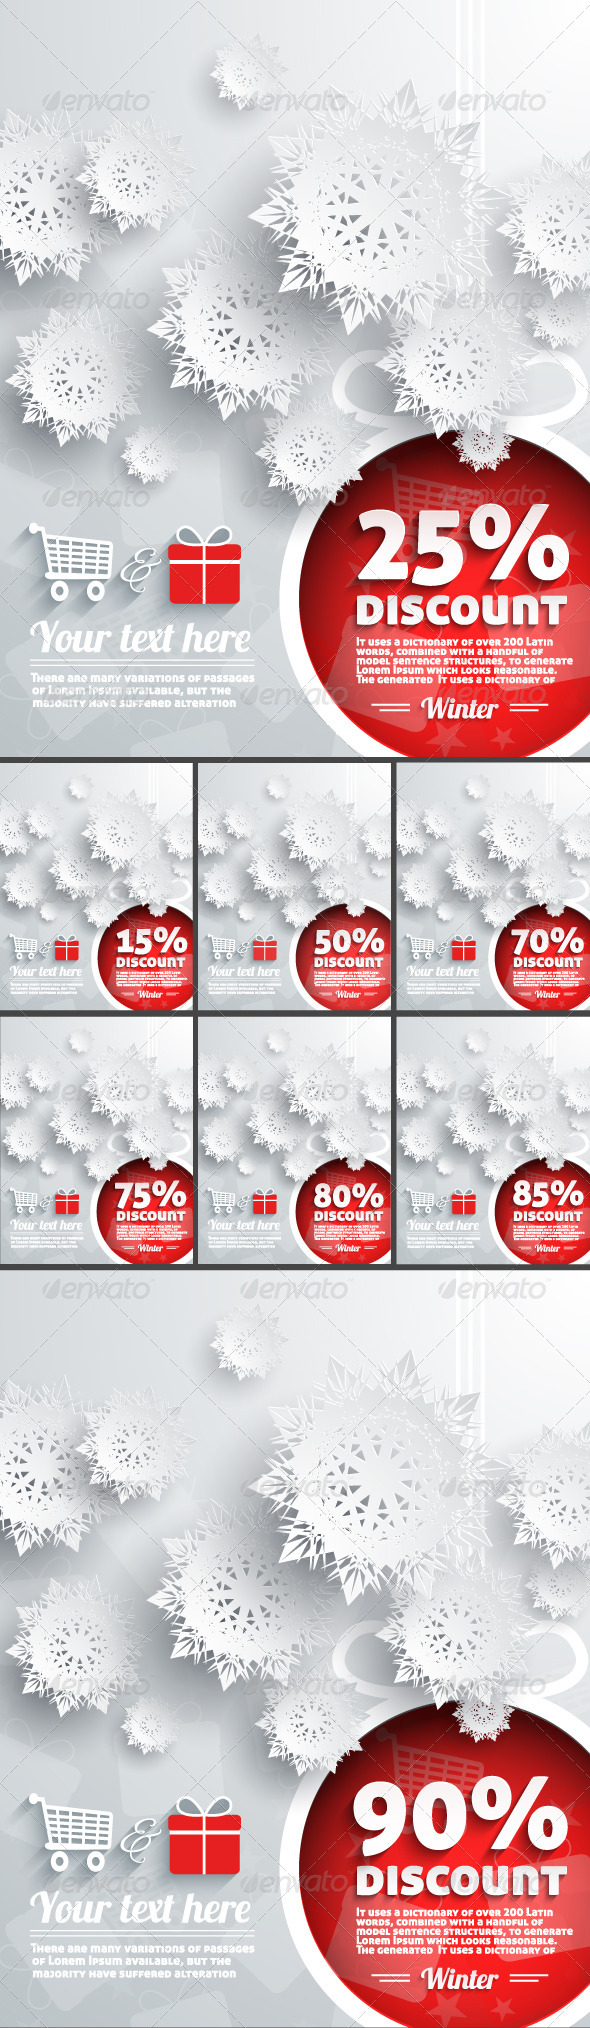 Winter Discount Percent with Snowflake and Ball - Retail Commercial / Shopping